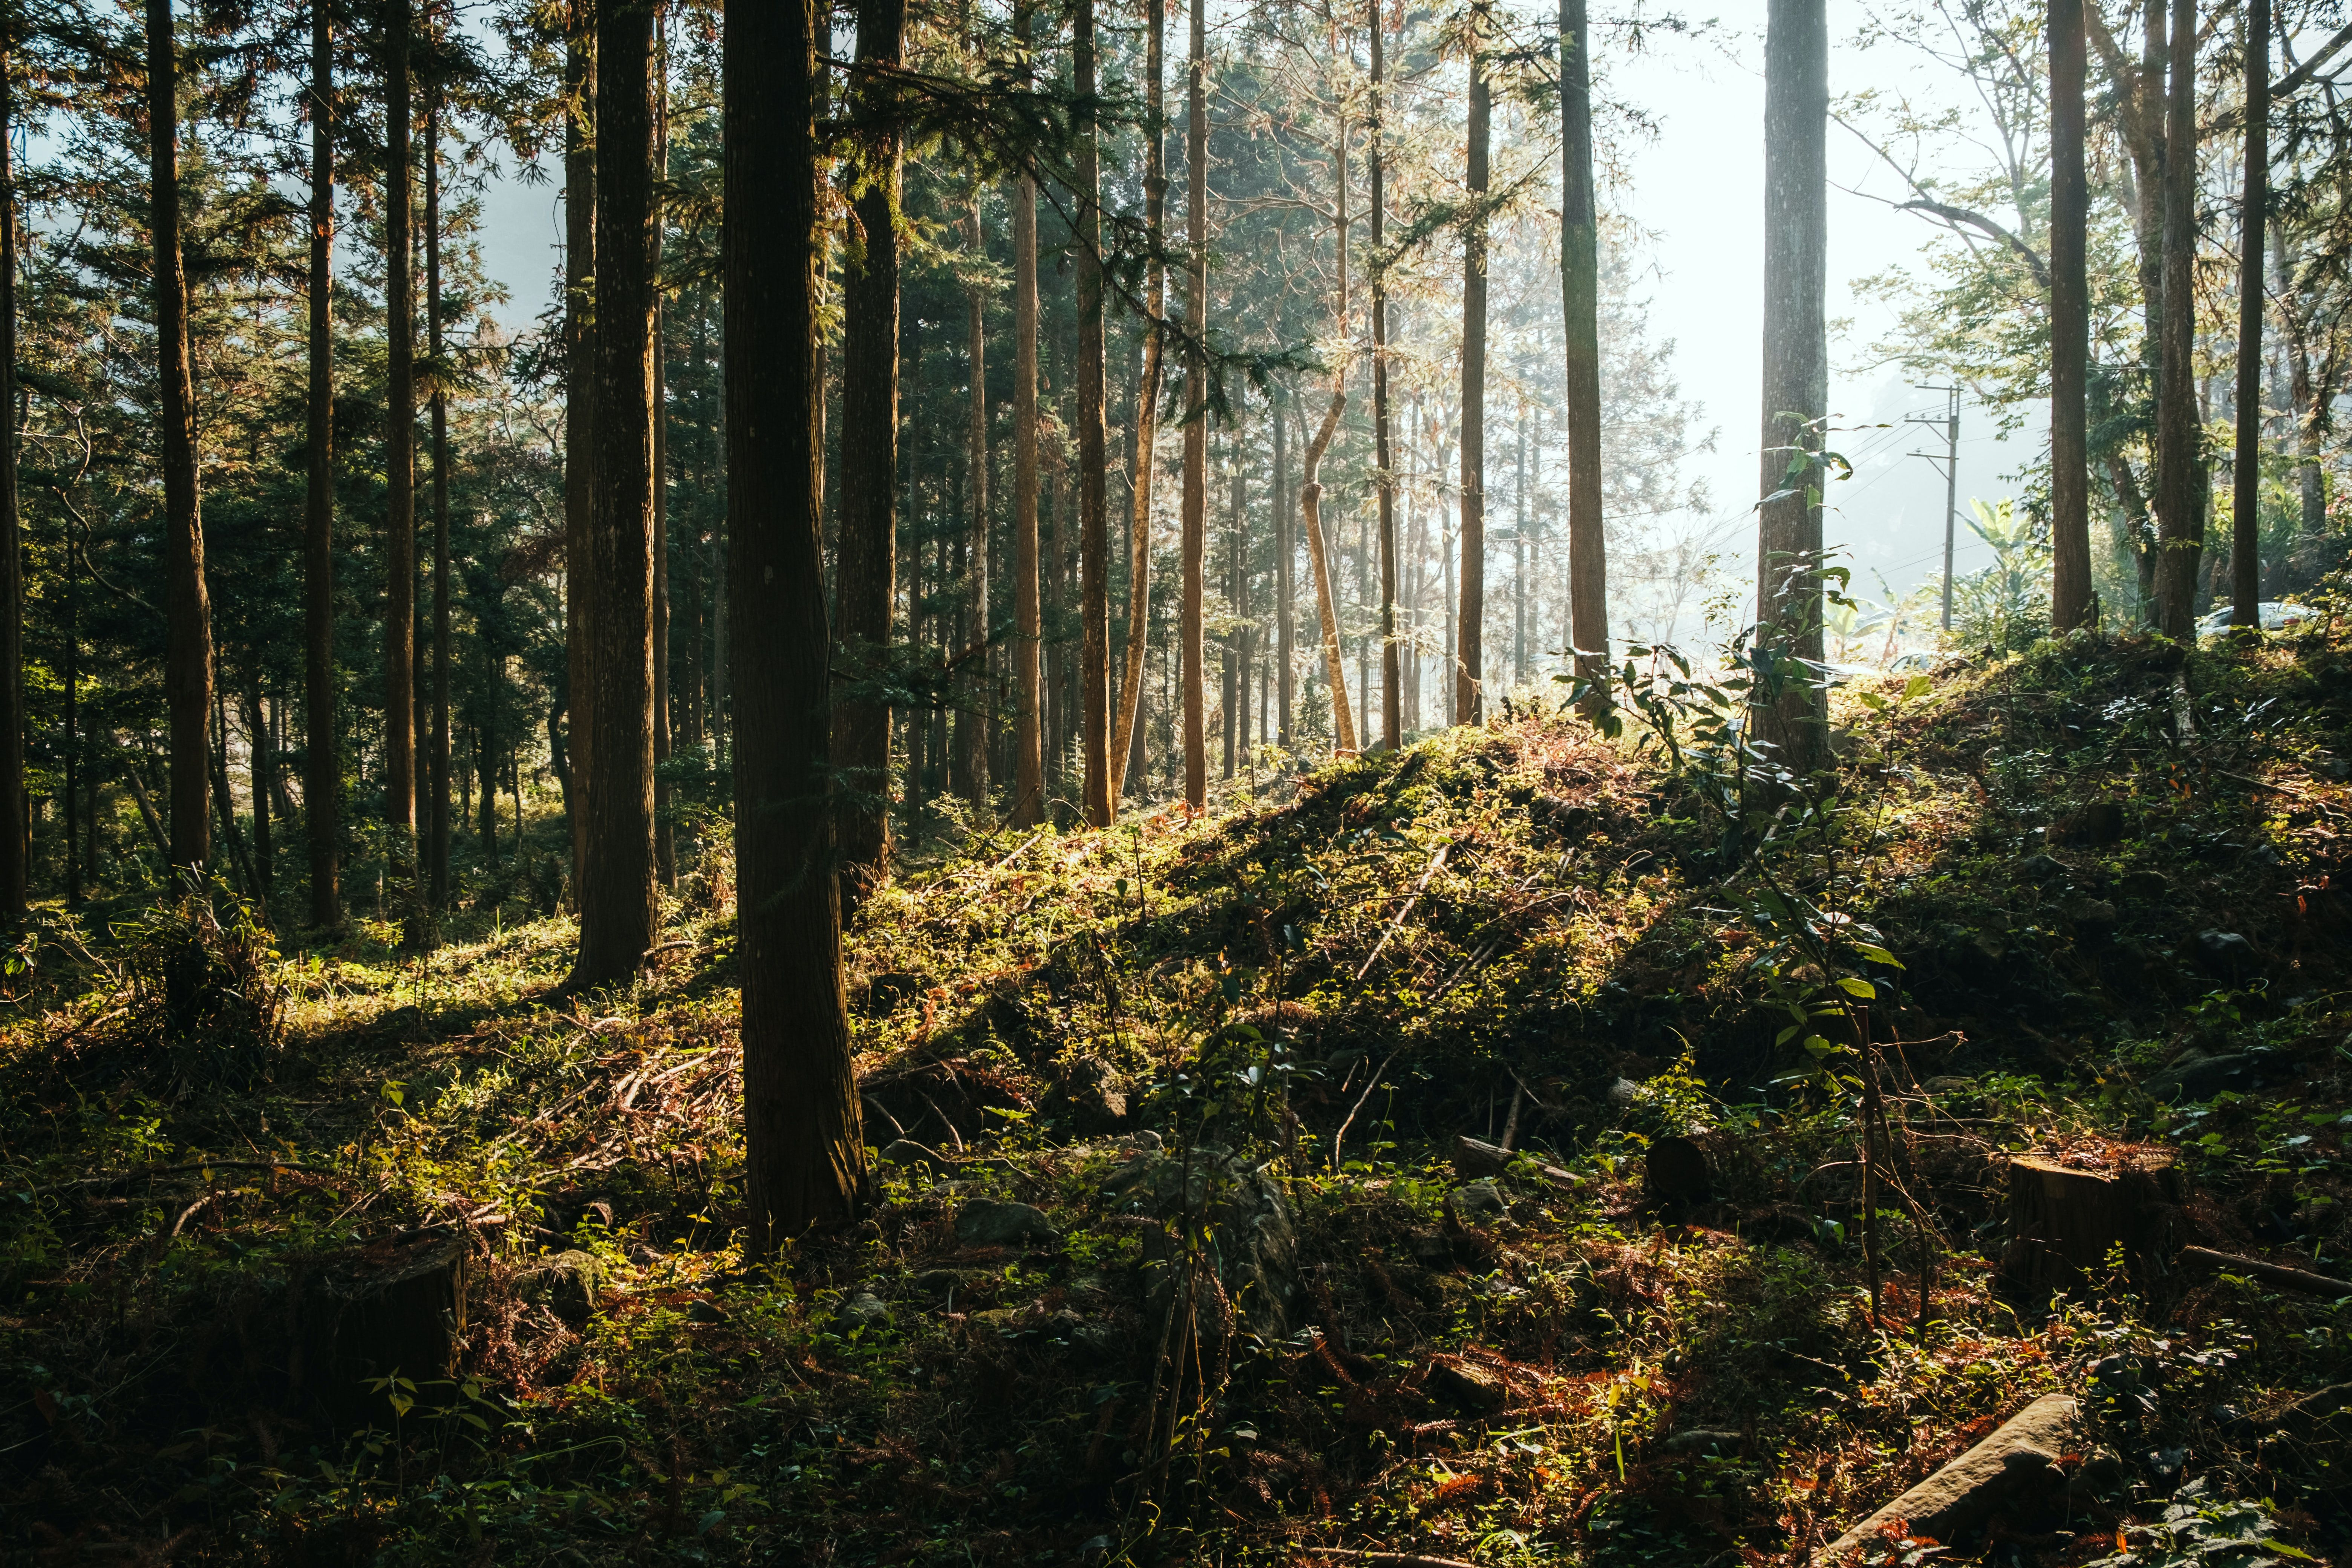 Forest trees and vegetation